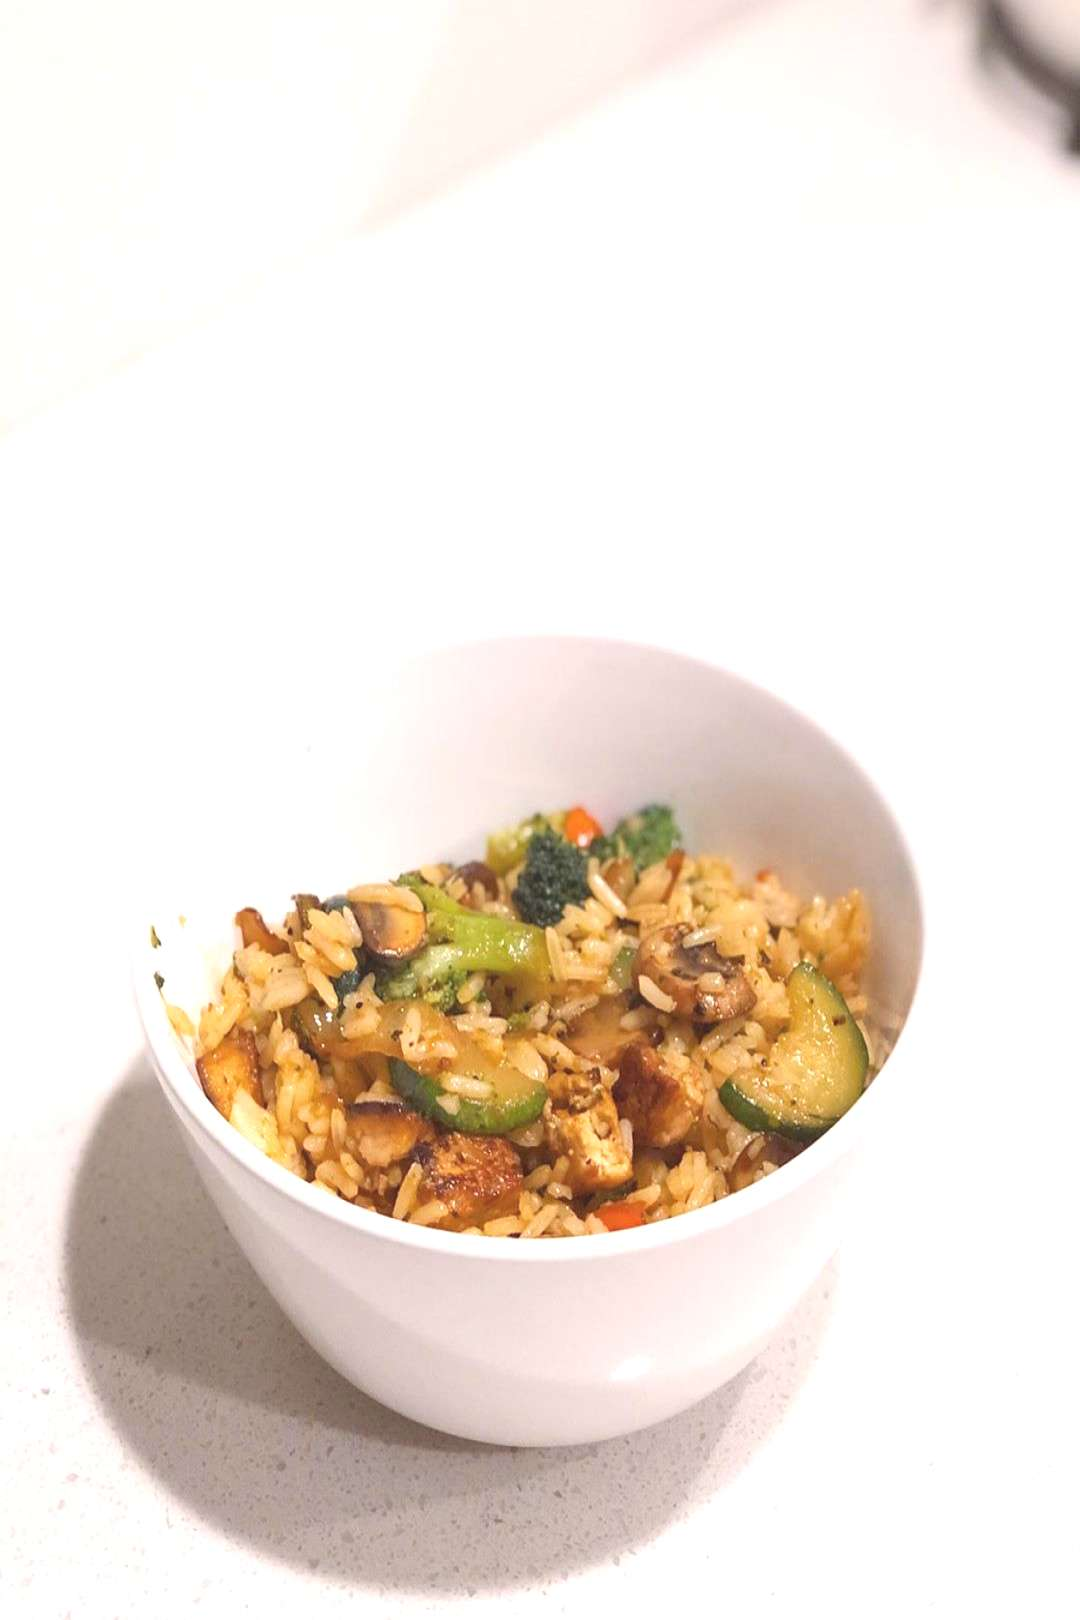 This Tofu amp Vegetable Stir-Fry is making my heart SO happy 